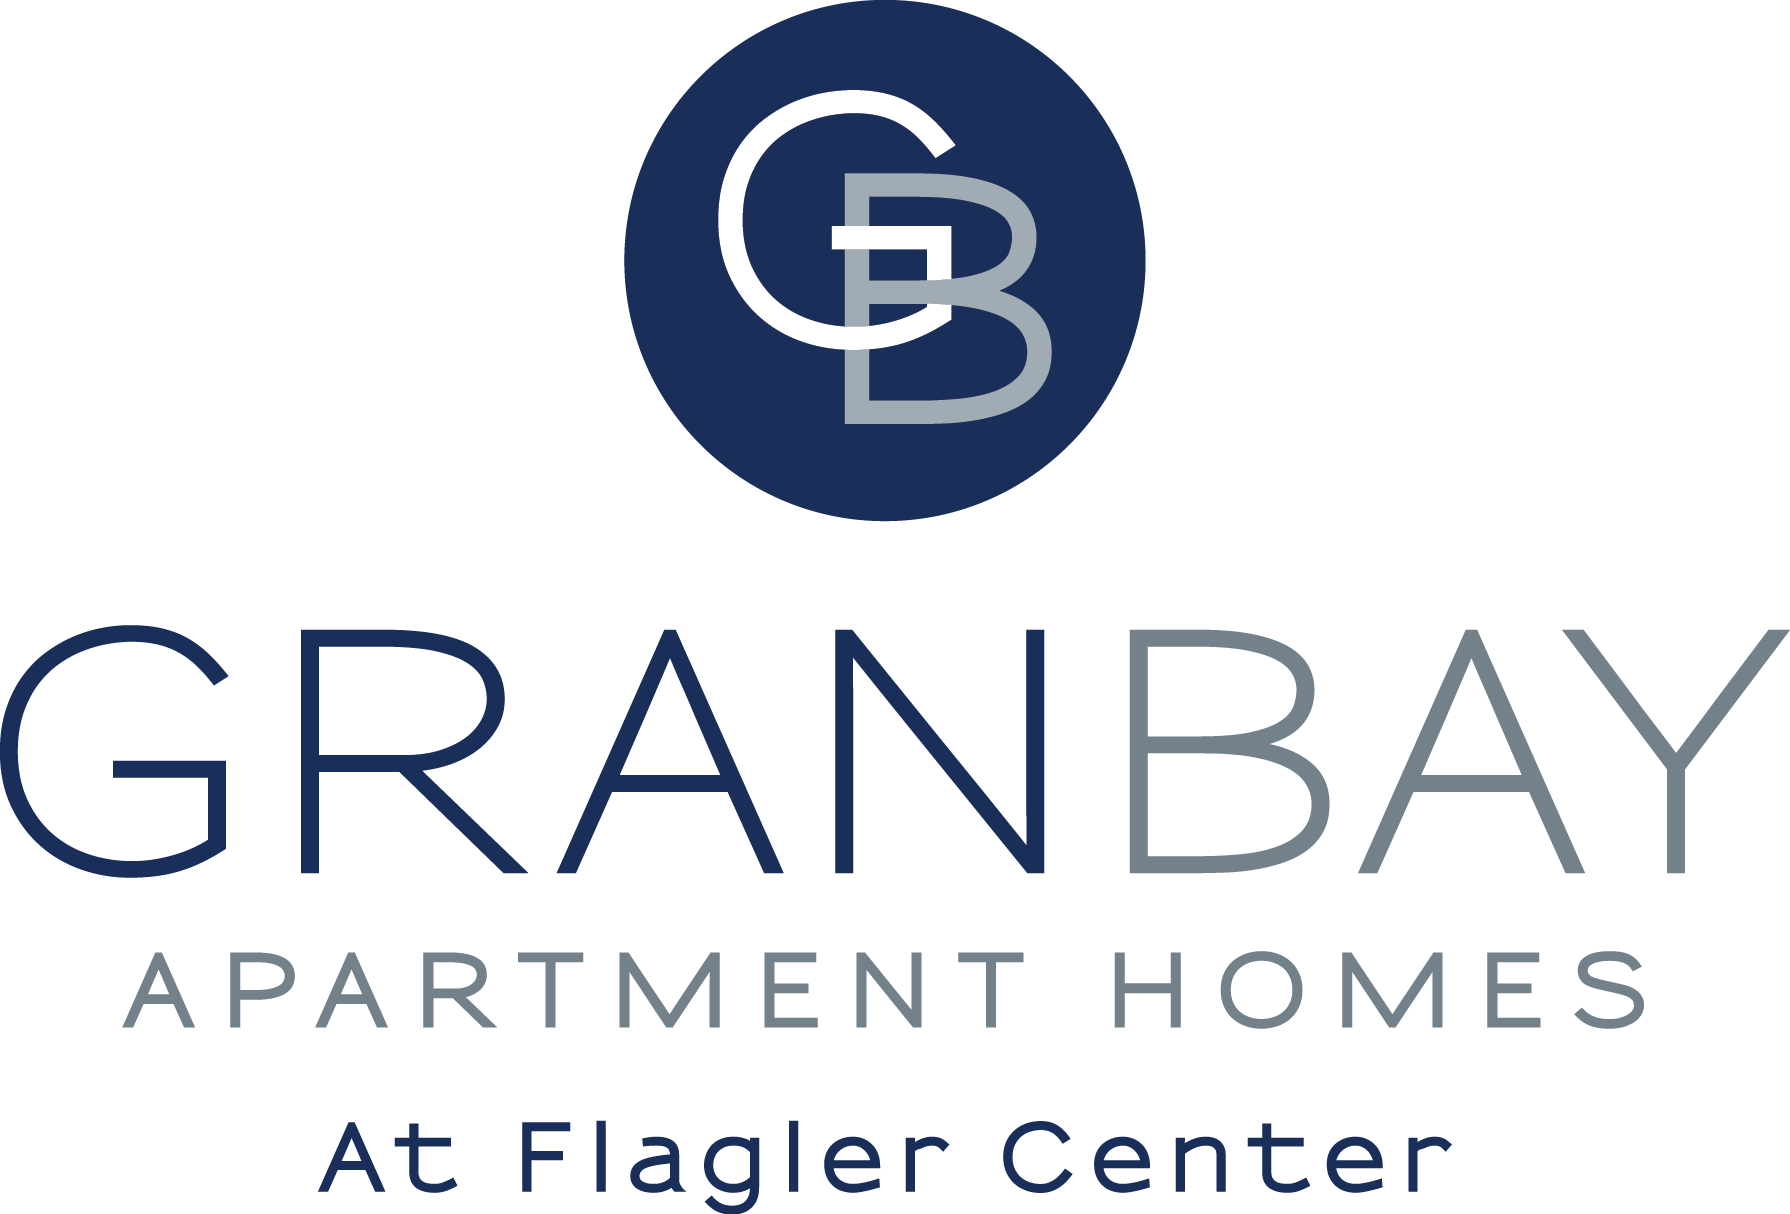 Gran Bay Apartment Homes at Flagler Center